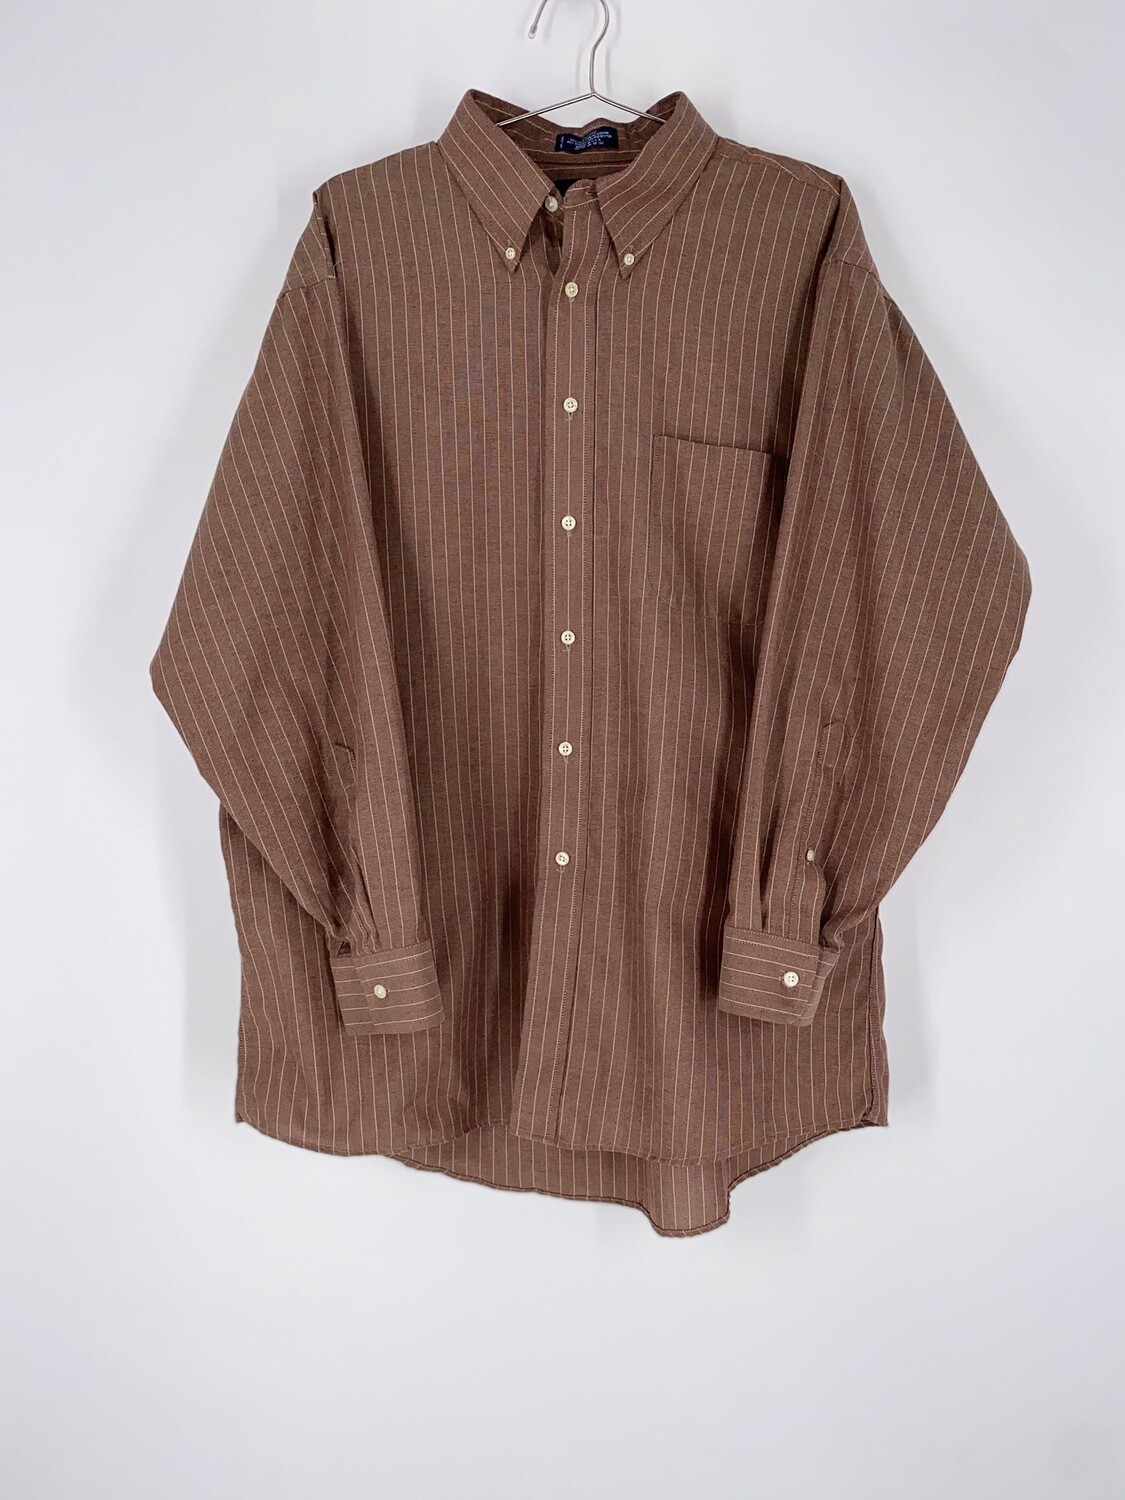 Brown Pinstripe Button Up Size XL